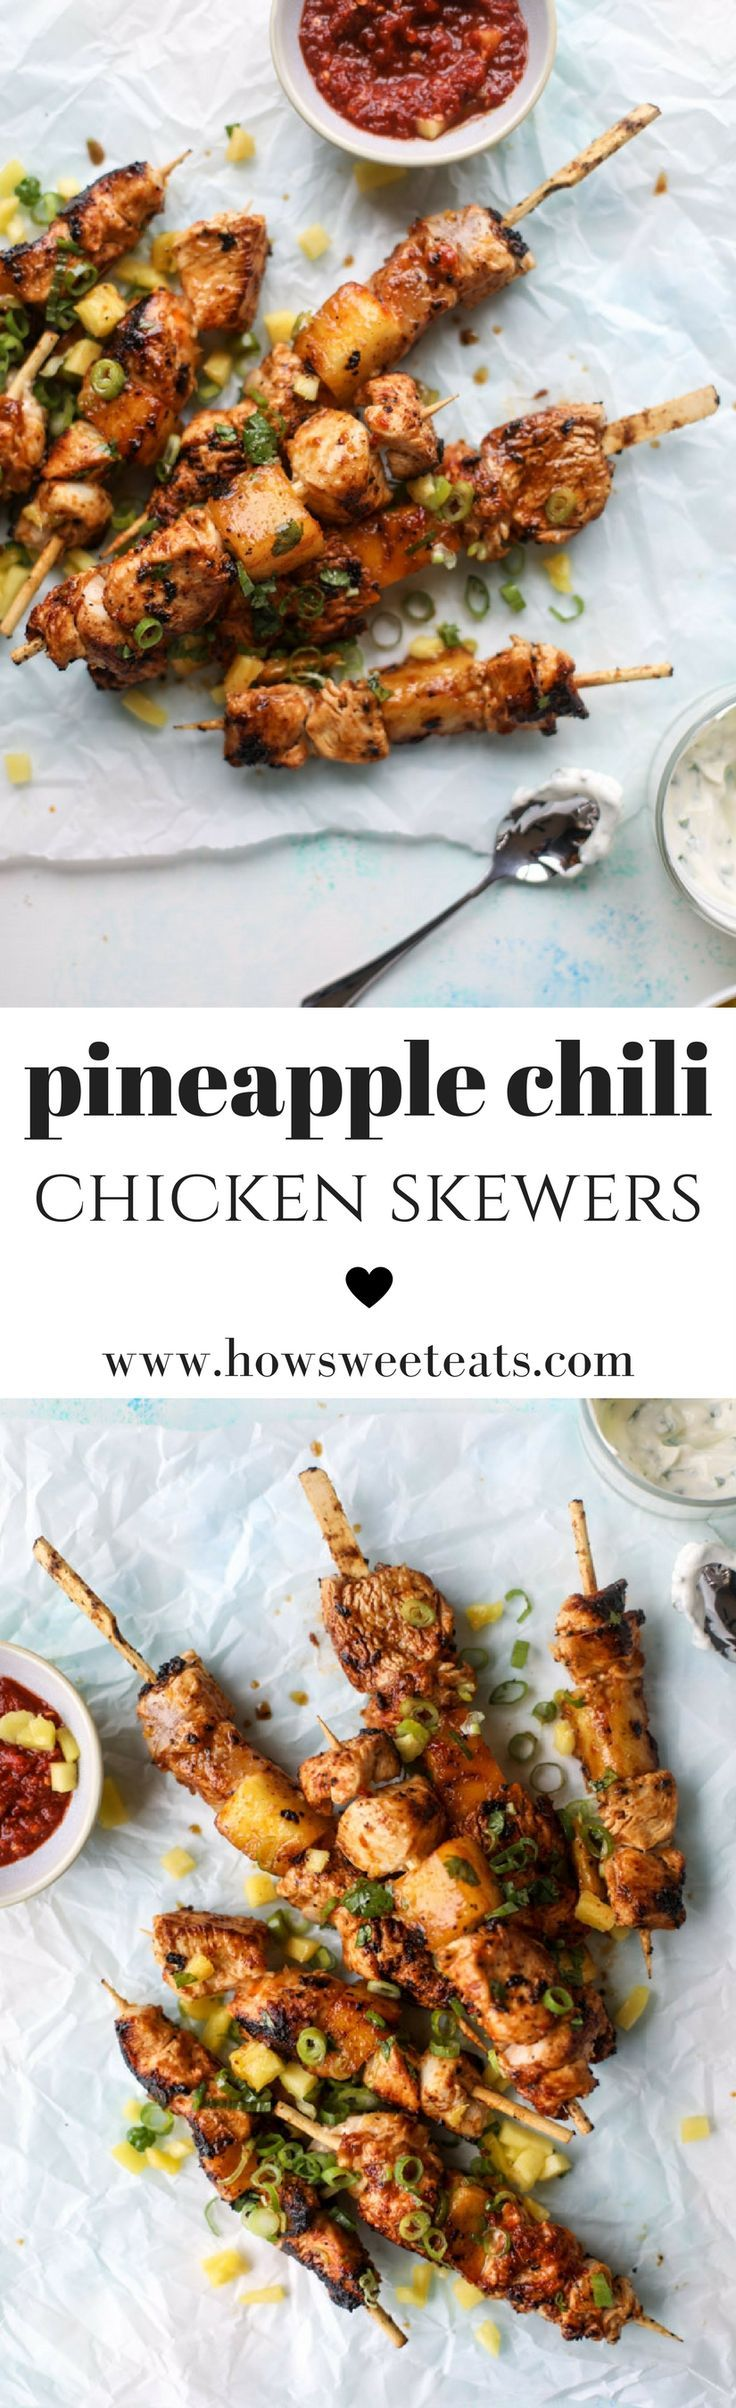 Pineapple Chili Chicken Skewers by @howsweeteats I howsweeteats.com